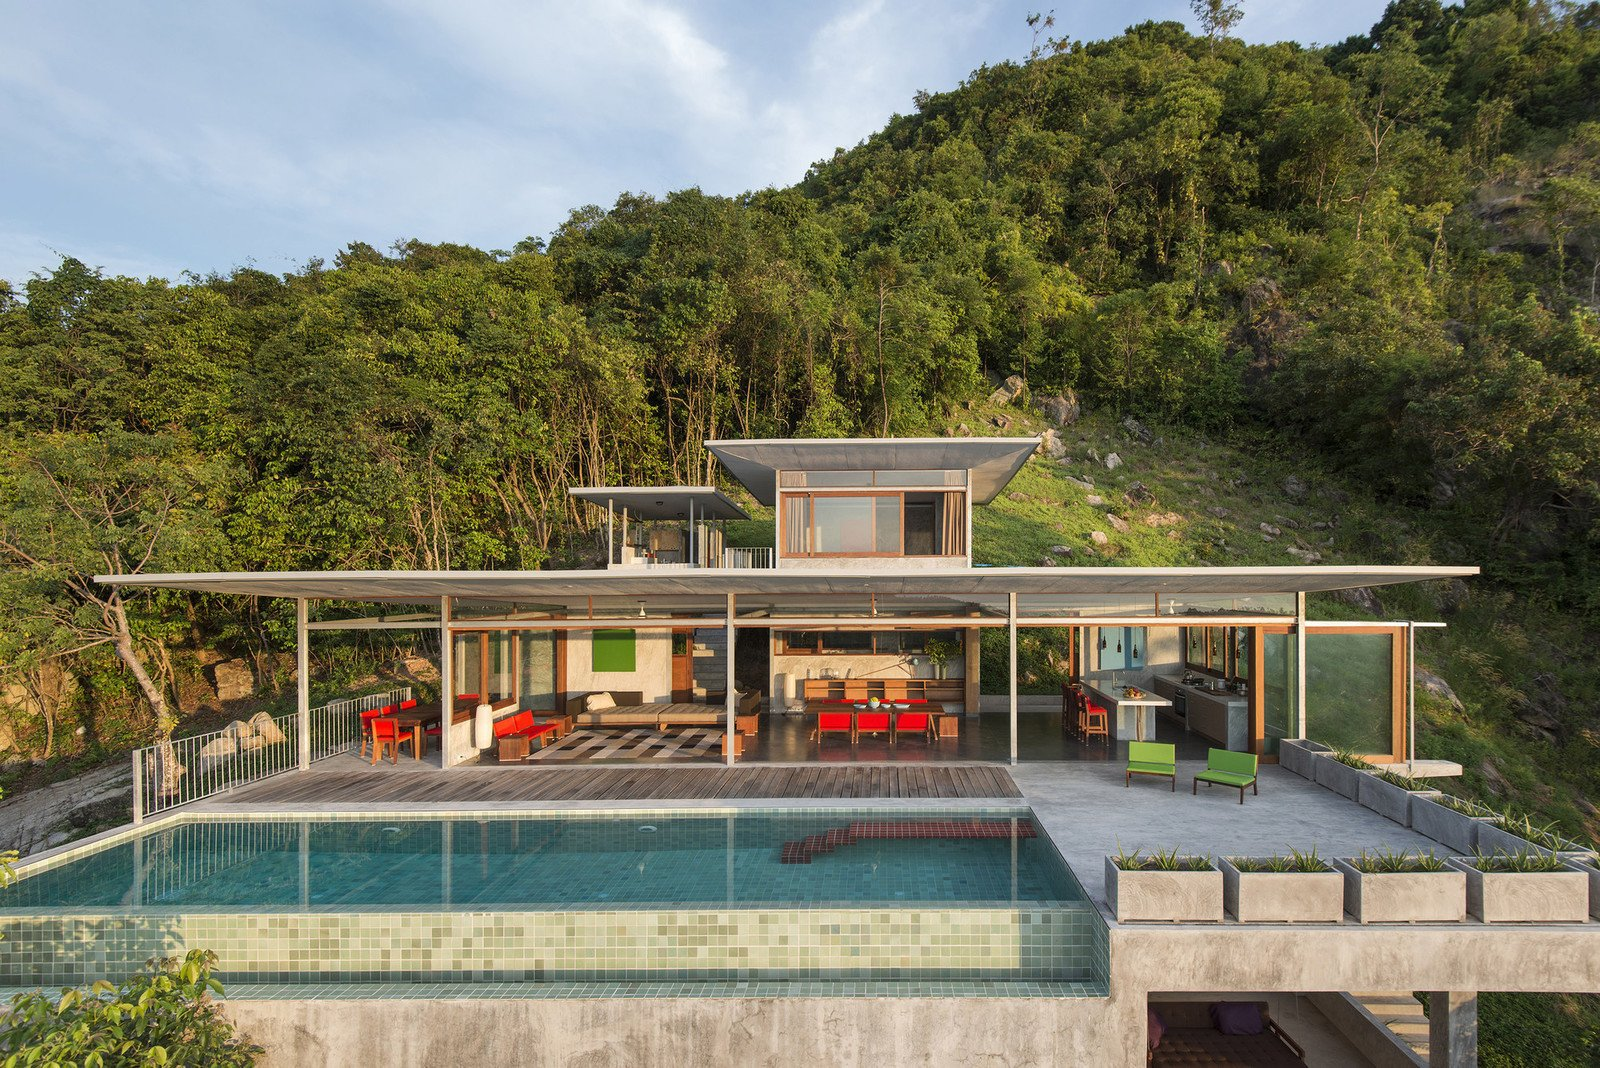 Outdoor, Grass, Infinity, Slope, Swimming, Trees, Raised Planters, Back Yard, Concrete, and Metal  Outdoor Metal Swimming Photos from Take a Trip to This Photographer-Designed Concrete Home in Thailand